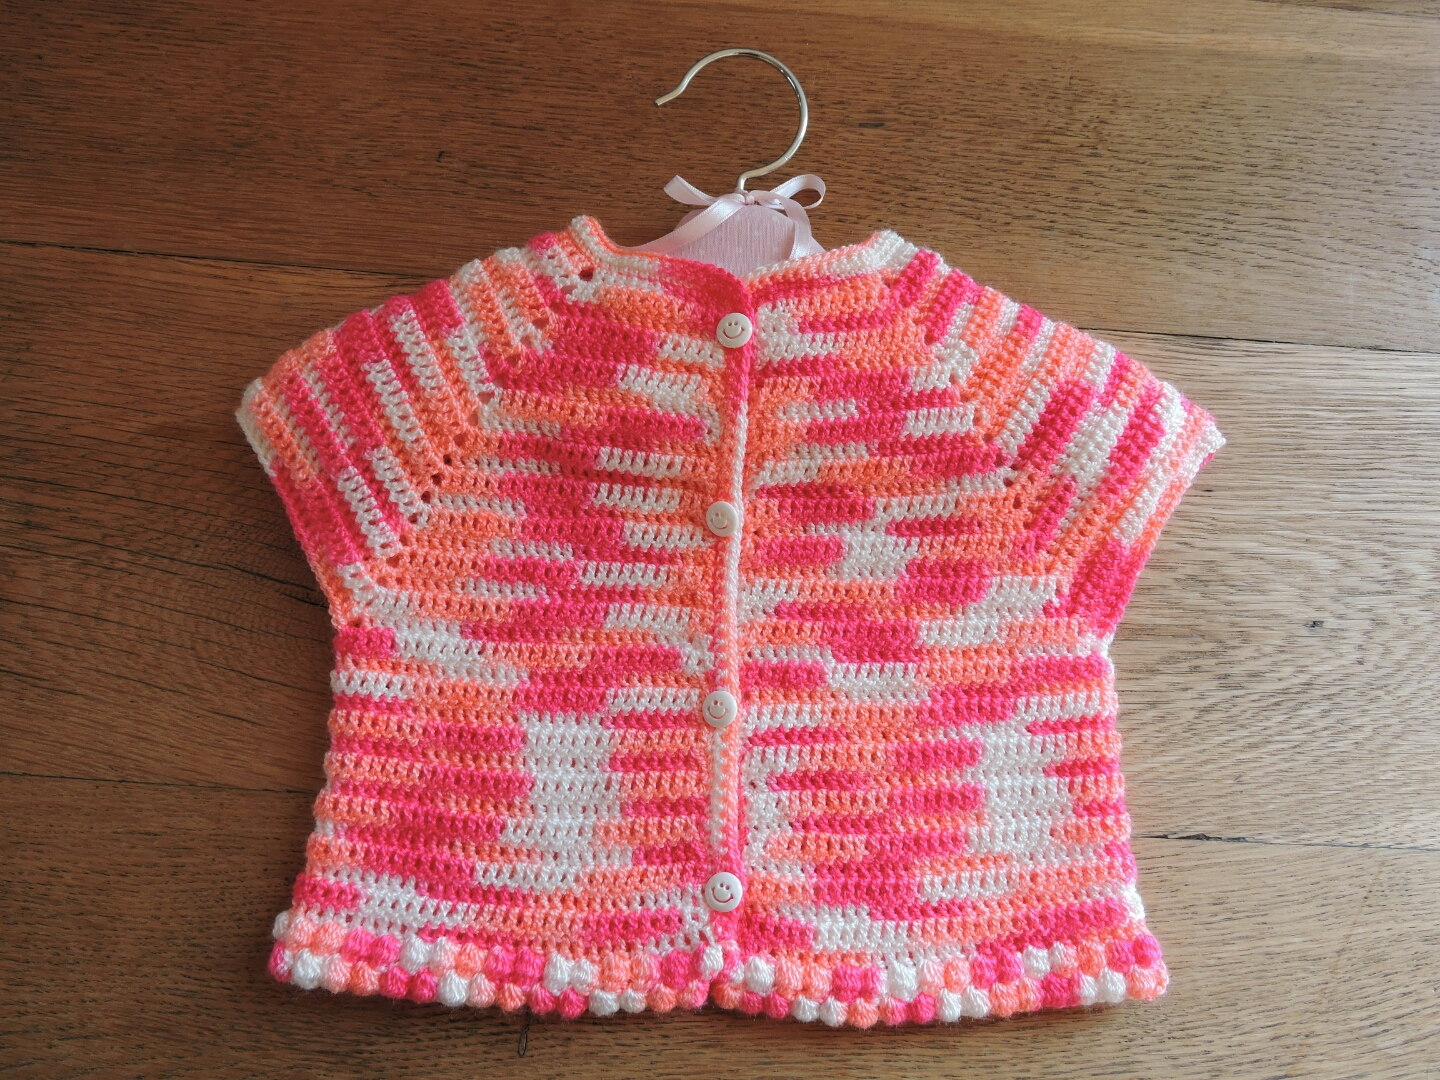 Crochet Child Cardigan Pattern : ?Marguerite? baby cardigan free crochet pattern PROJECT ...